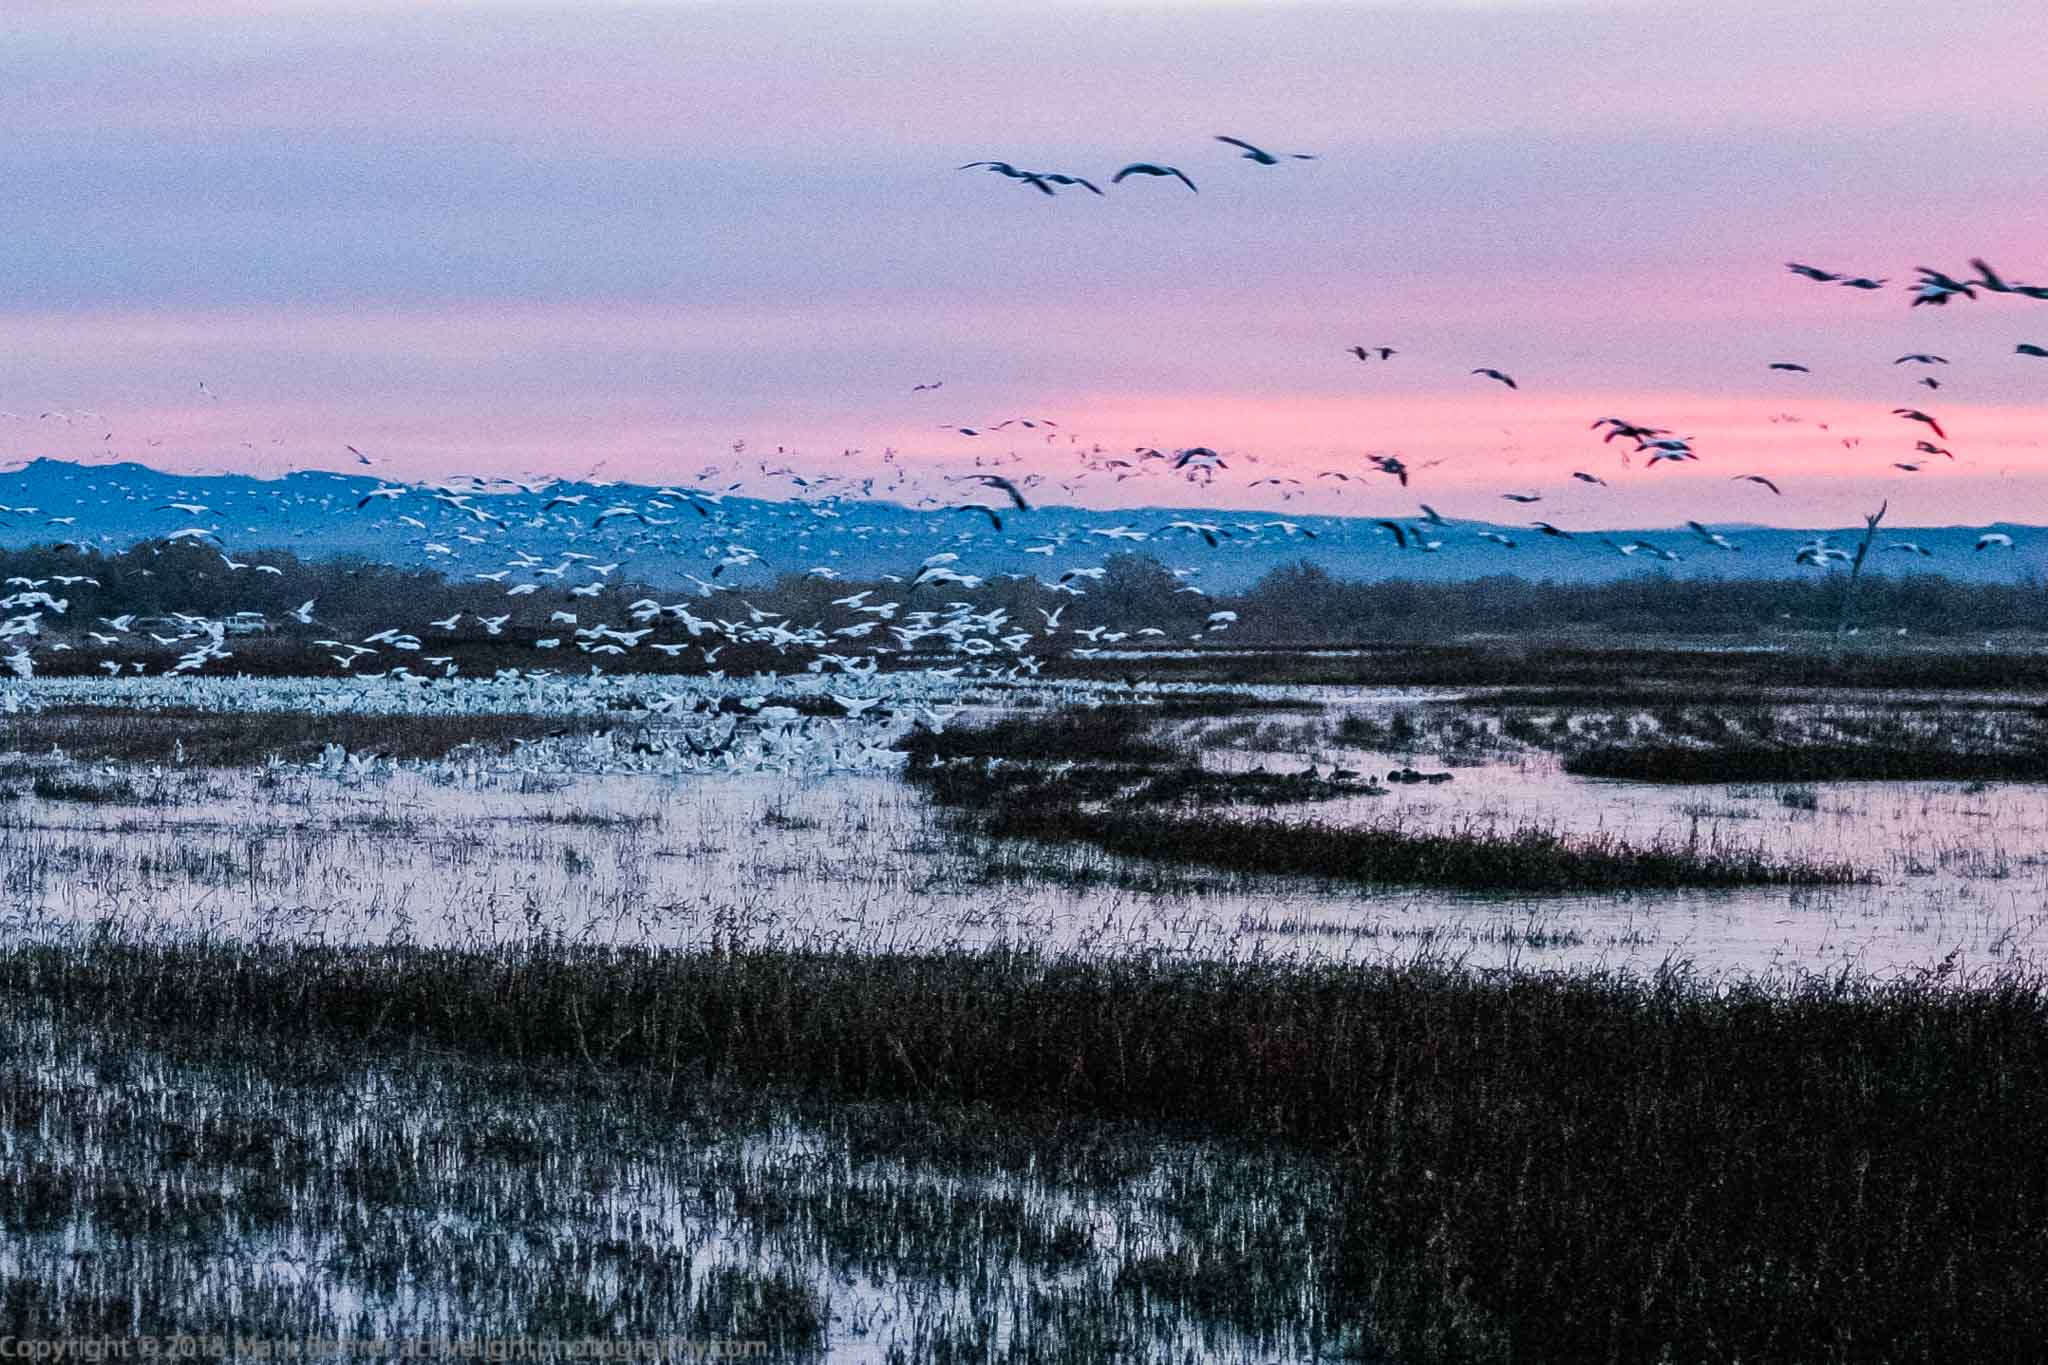 2003 snow goose sunrise liftoff, Bosque del Apache